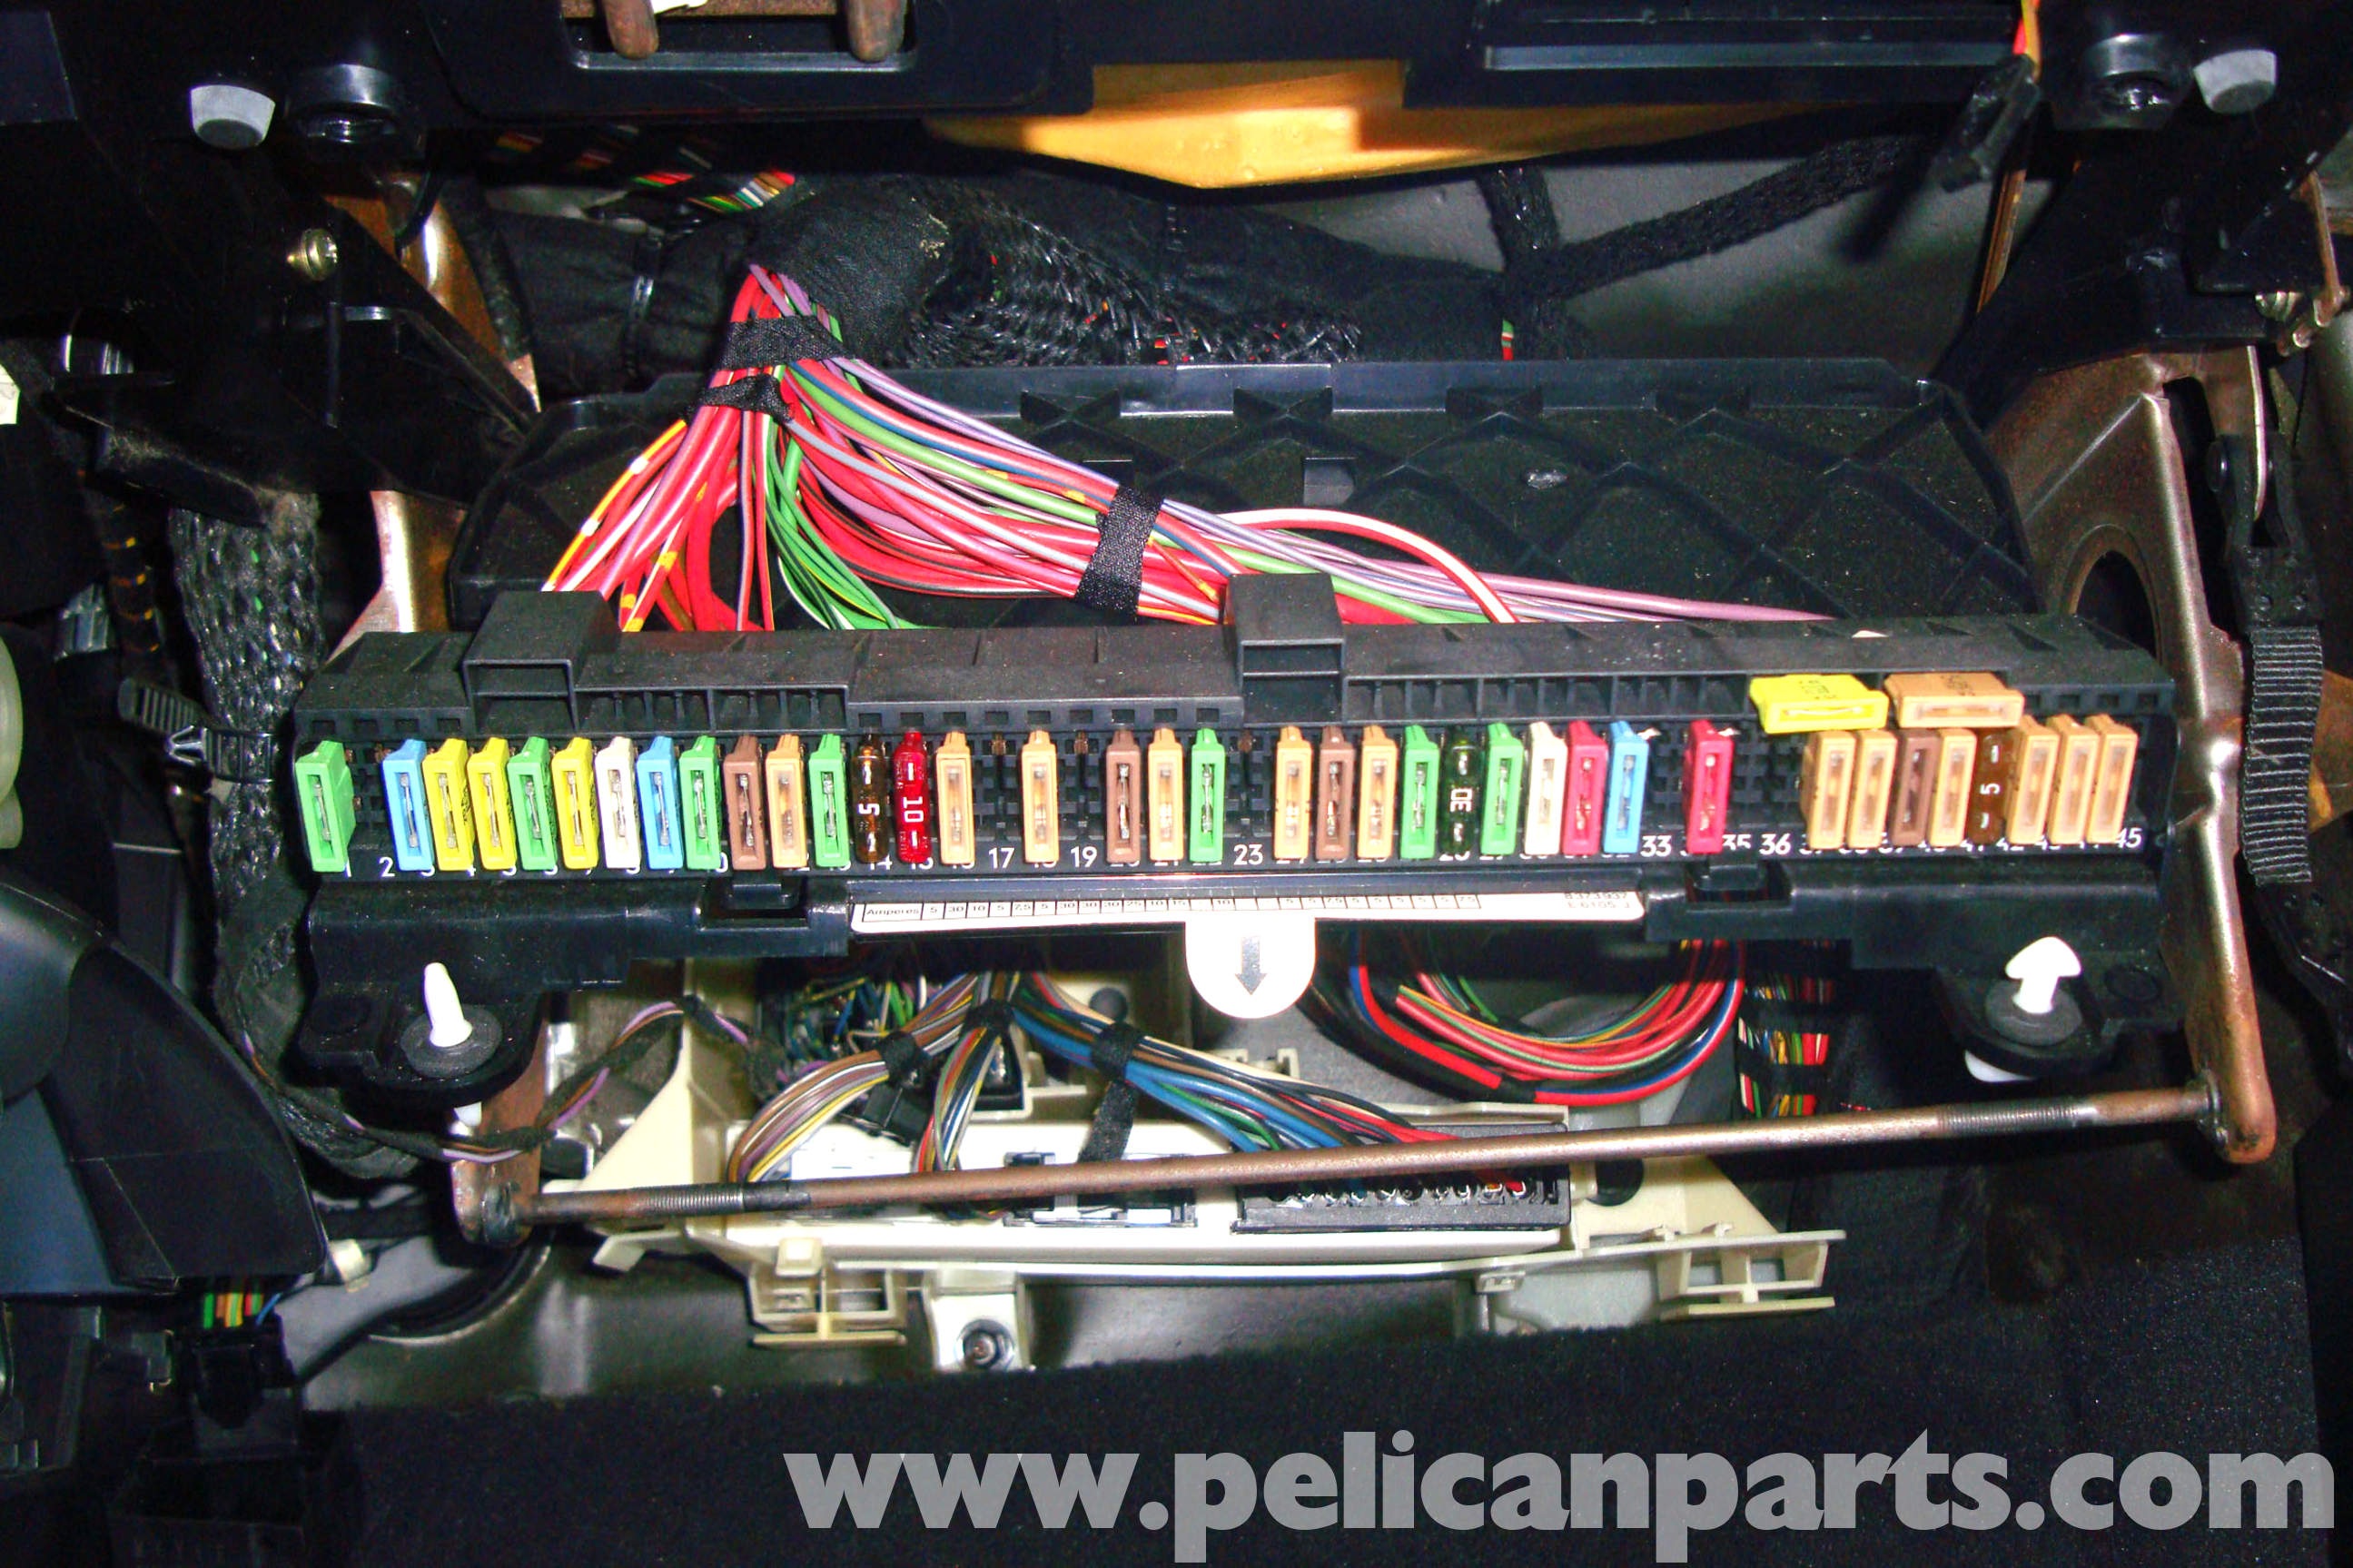 pic01 bmw e39 5 series blower motor testing 1997 2003 525i, 528i, 530i e39 fuse diagram at gsmx.co